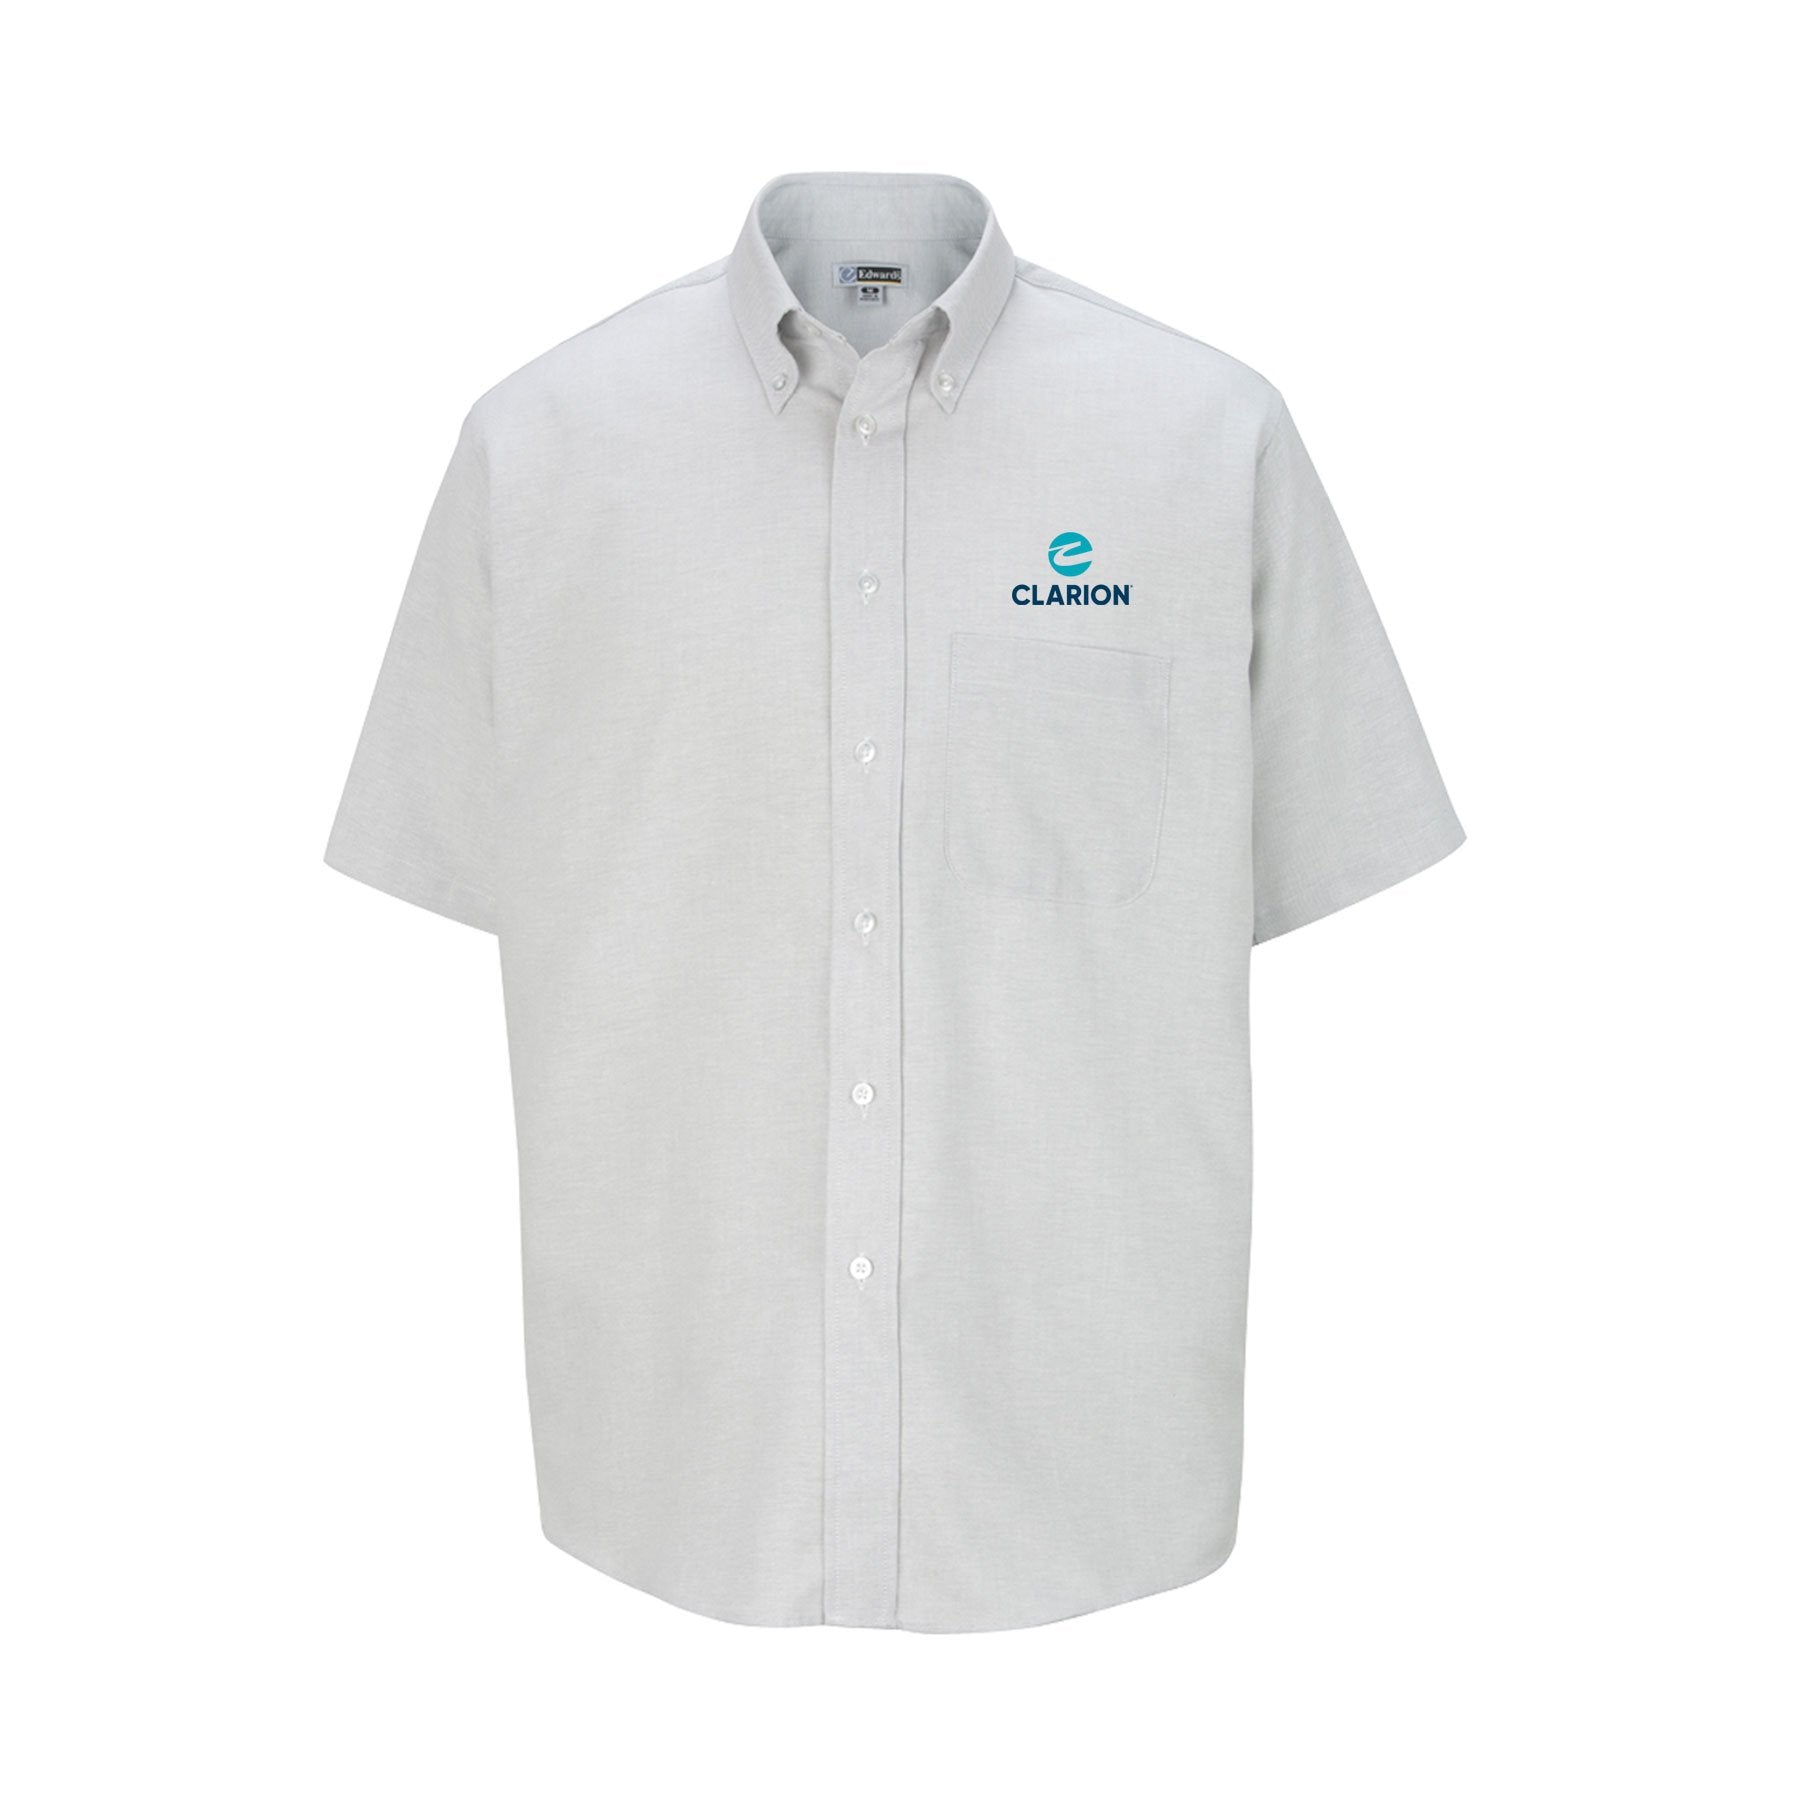 Men's Short Sleeve Easy-Care Oxford - Clarion